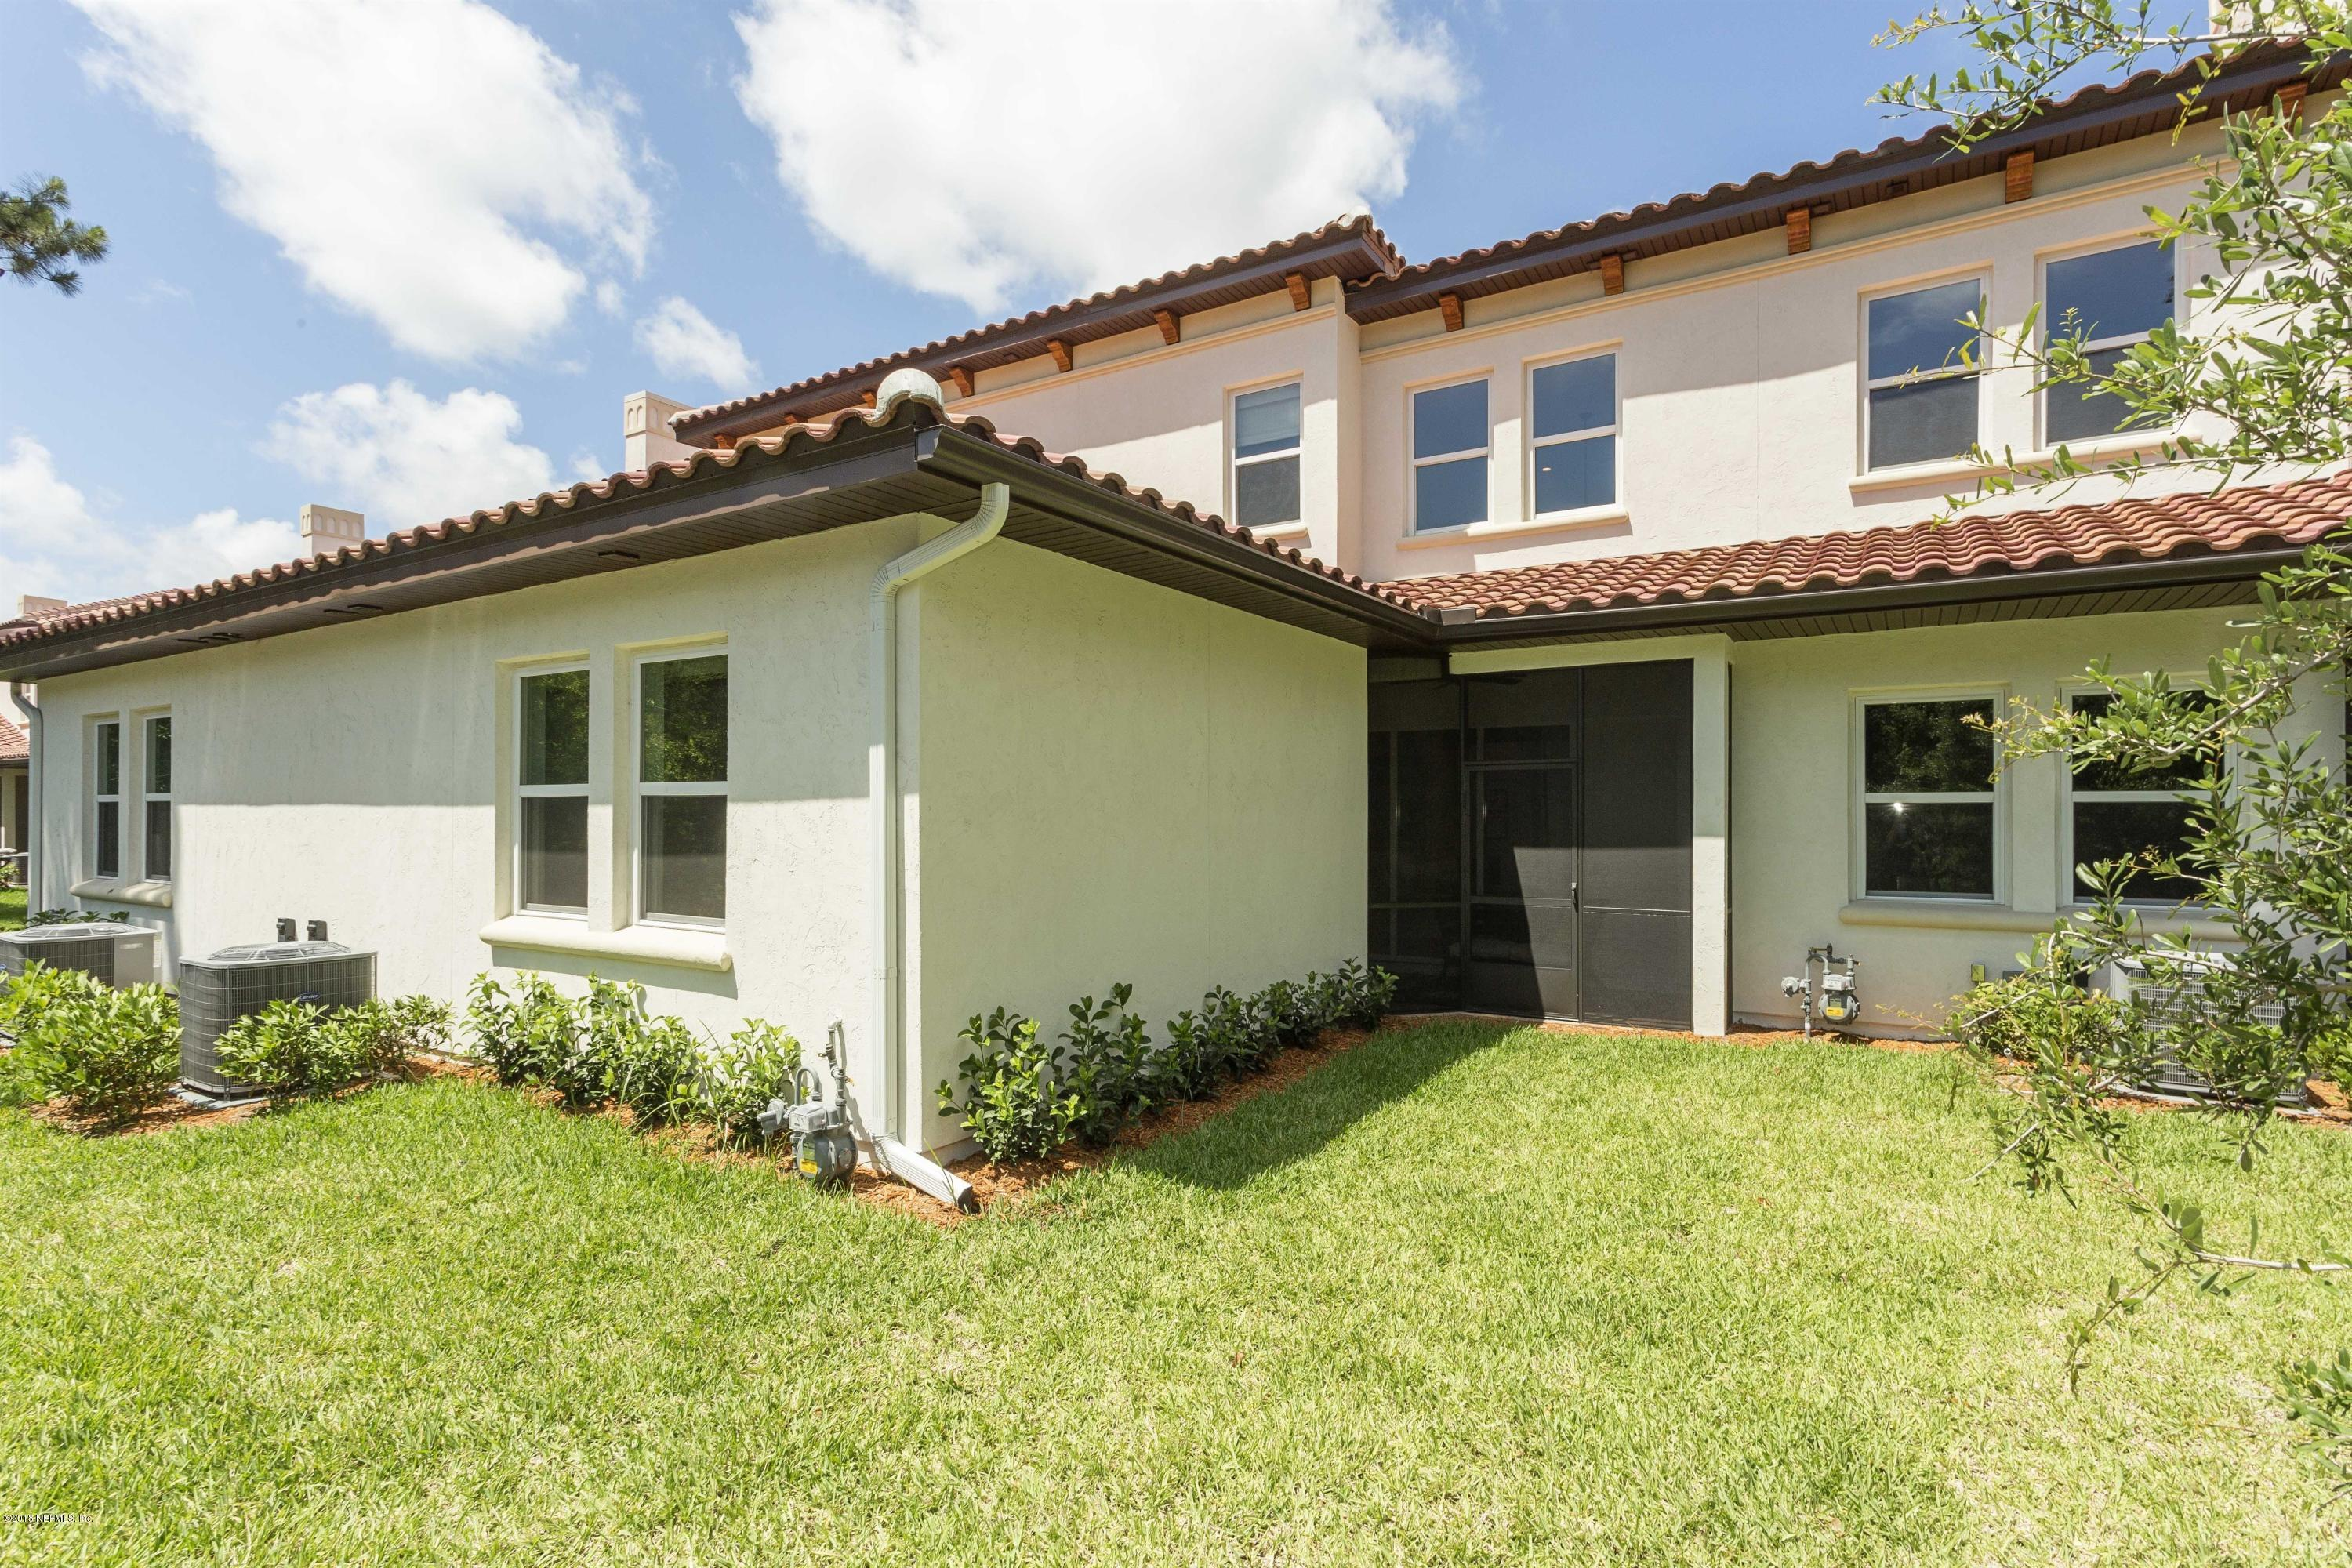 109 RIMINI, JACKSONVILLE, FLORIDA 32225, 3 Bedrooms Bedrooms, ,3 BathroomsBathrooms,Residential - townhome,For sale,RIMINI,945888